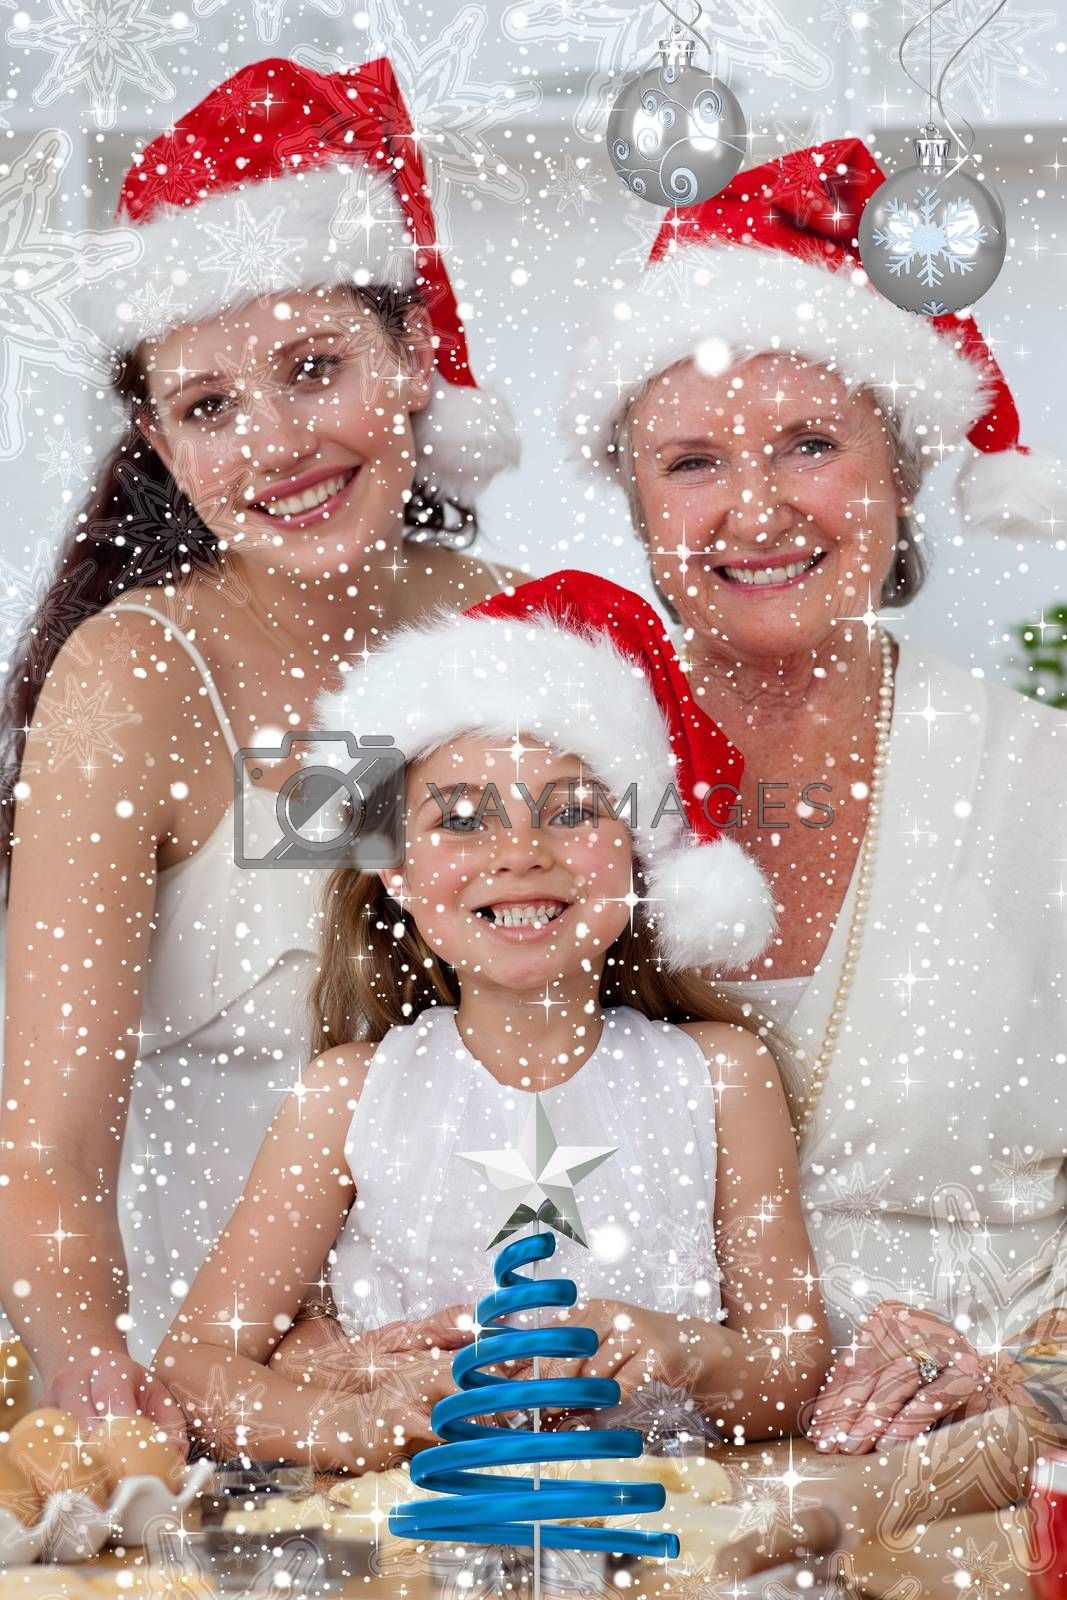 Daughter mother and grandmother baking Christmas sweets against twinkling stars